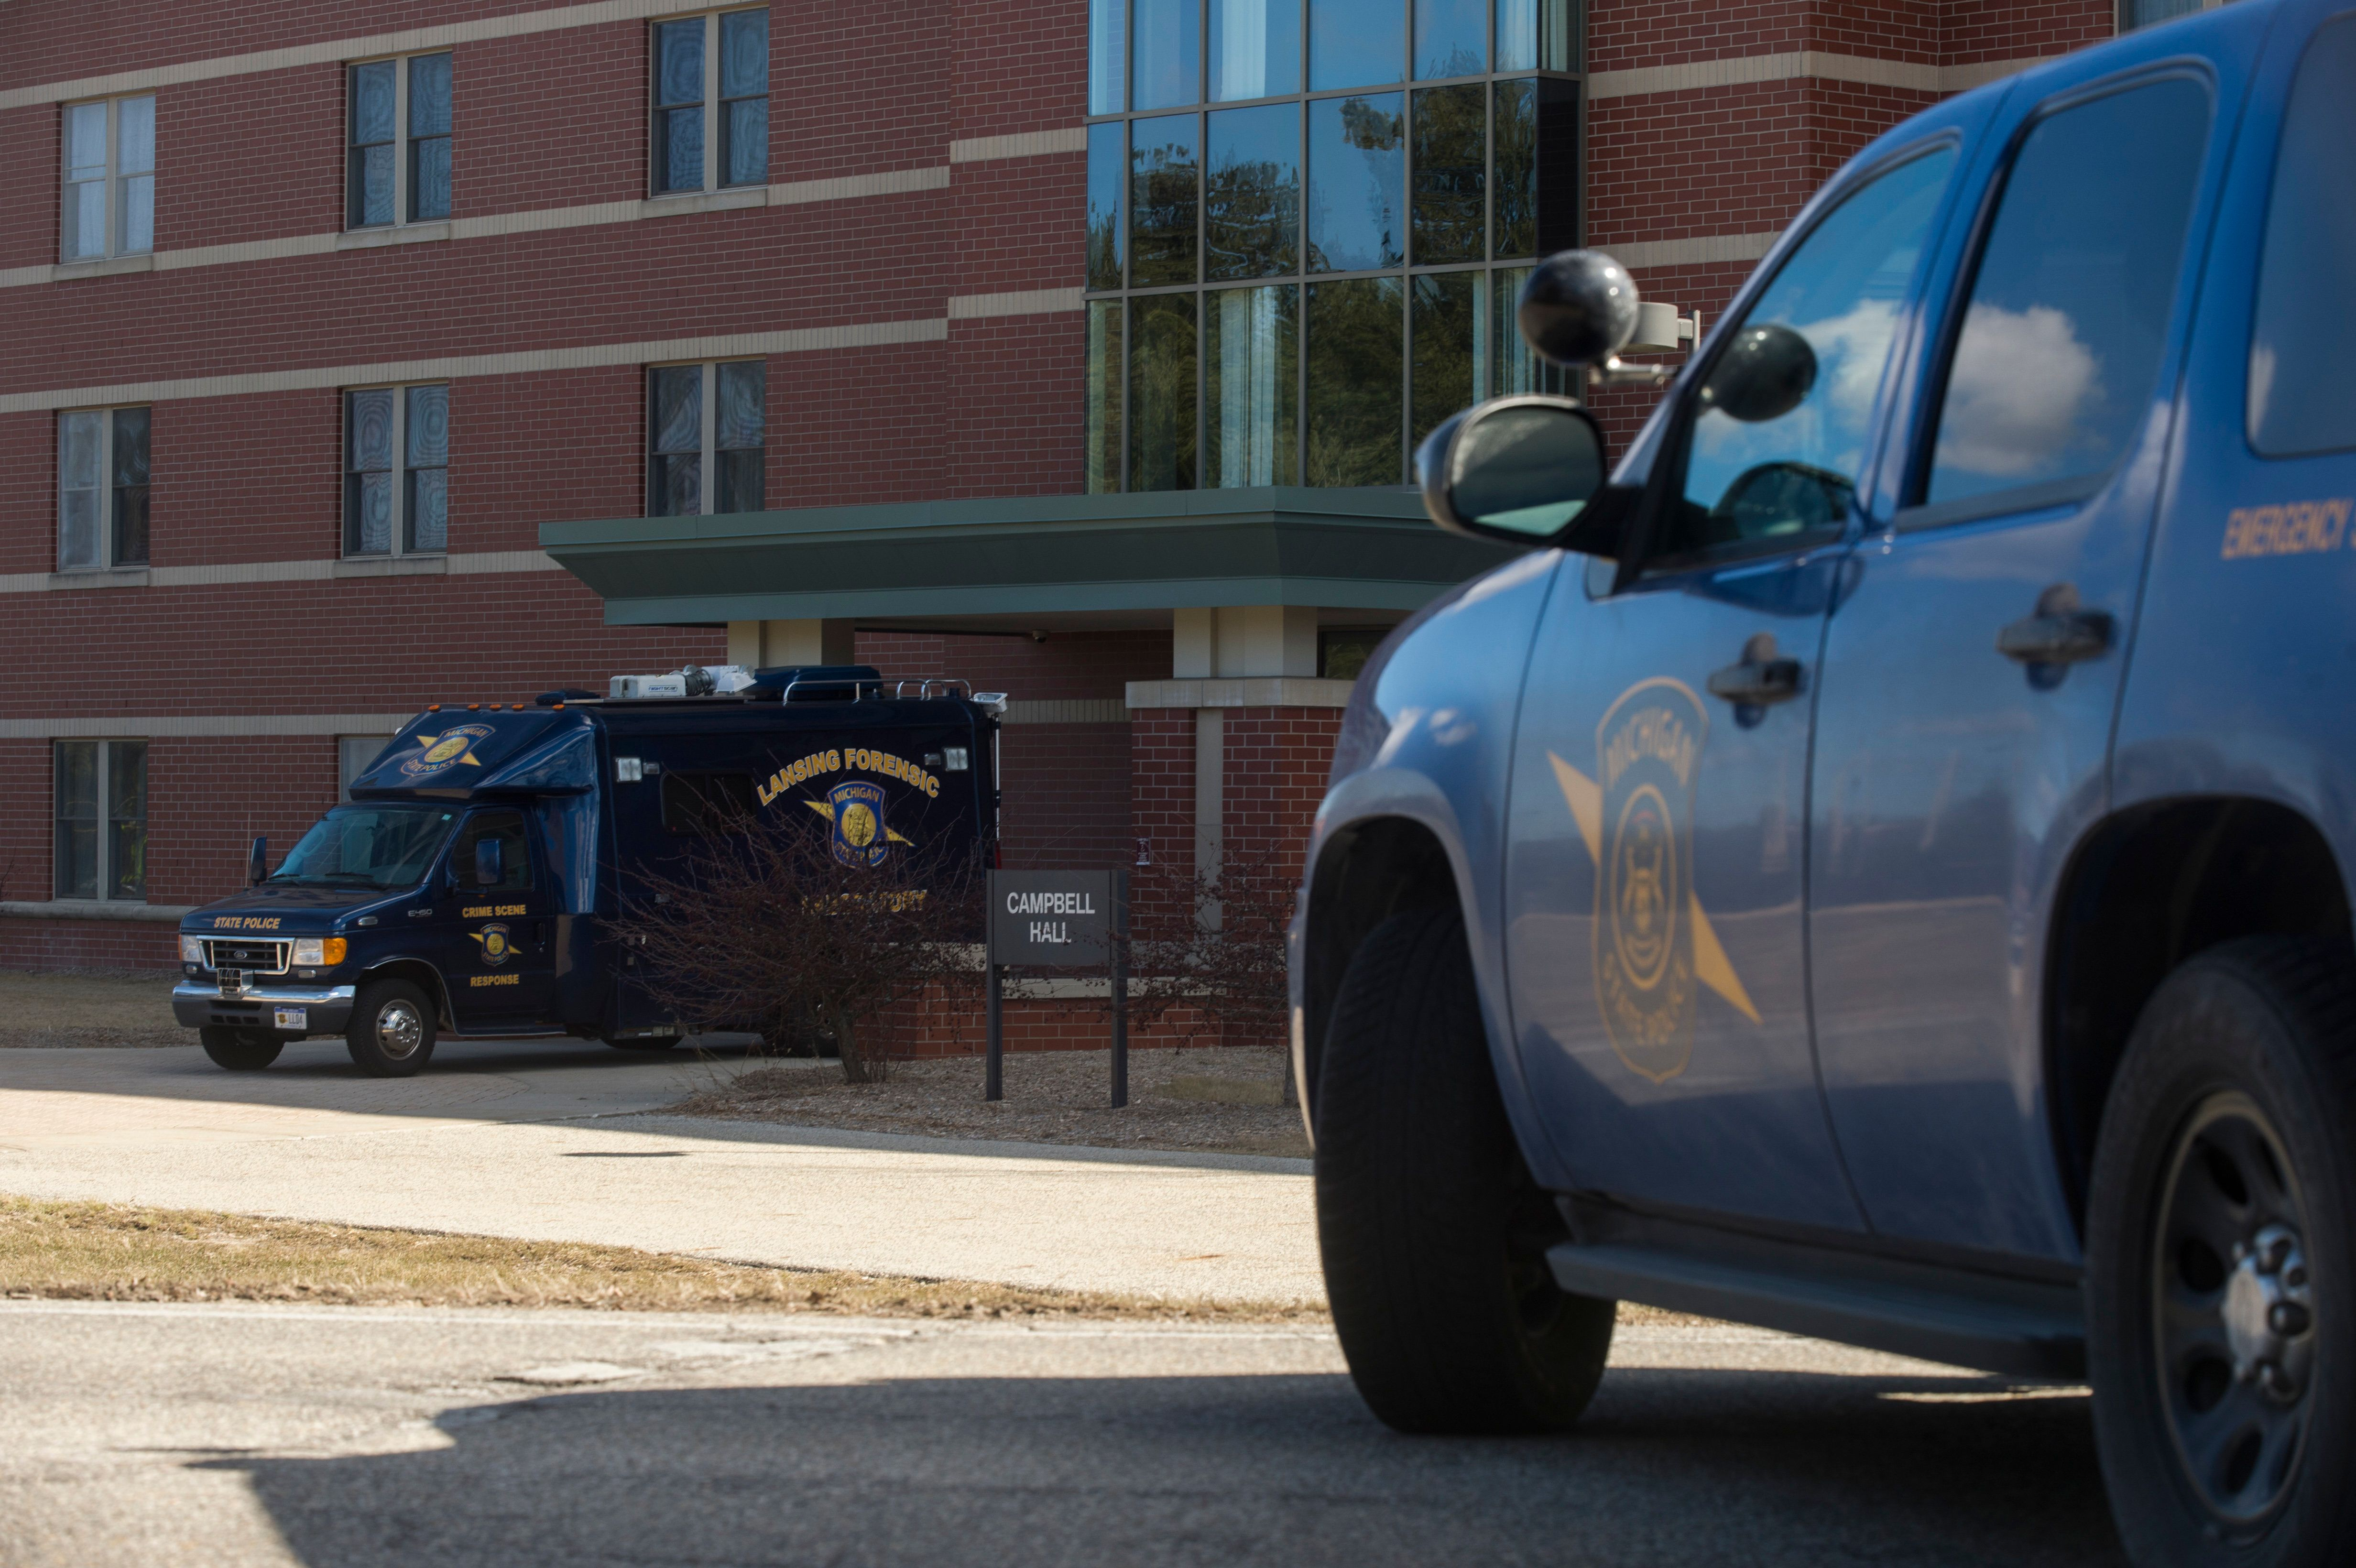 MOUNT PLEASANT, MI - MARCH 02: A Lansing Forensic Laboratory truck is parked outside of Campbell Hall, where a shooting took place at Central Michigan University on March 2, 2018 in Mount Pleasant, Michigan. Two people were killed in an on-campus shooting at Central Michigan University. The University is on lockdown as the police search for the suspect, a 19-year-old man. (Photo by Rachel Woolf/Getty Images)